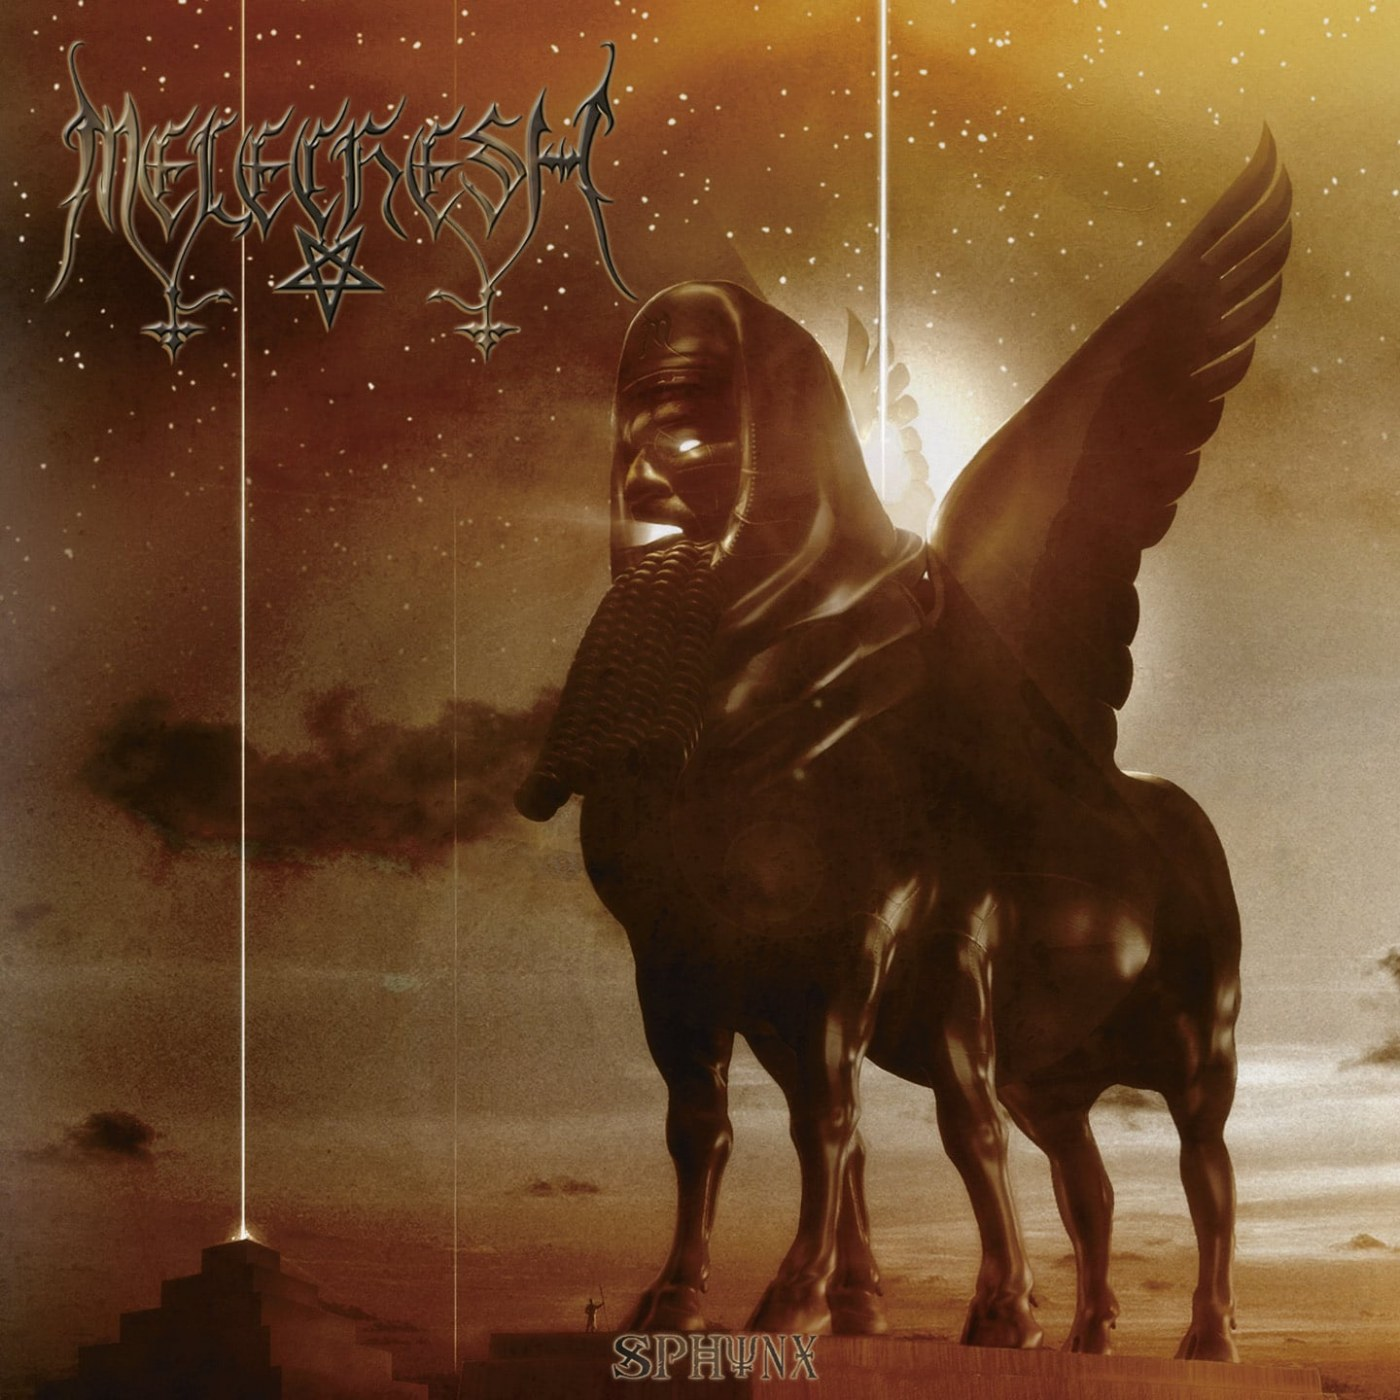 Review for Melechesh - Sphynx